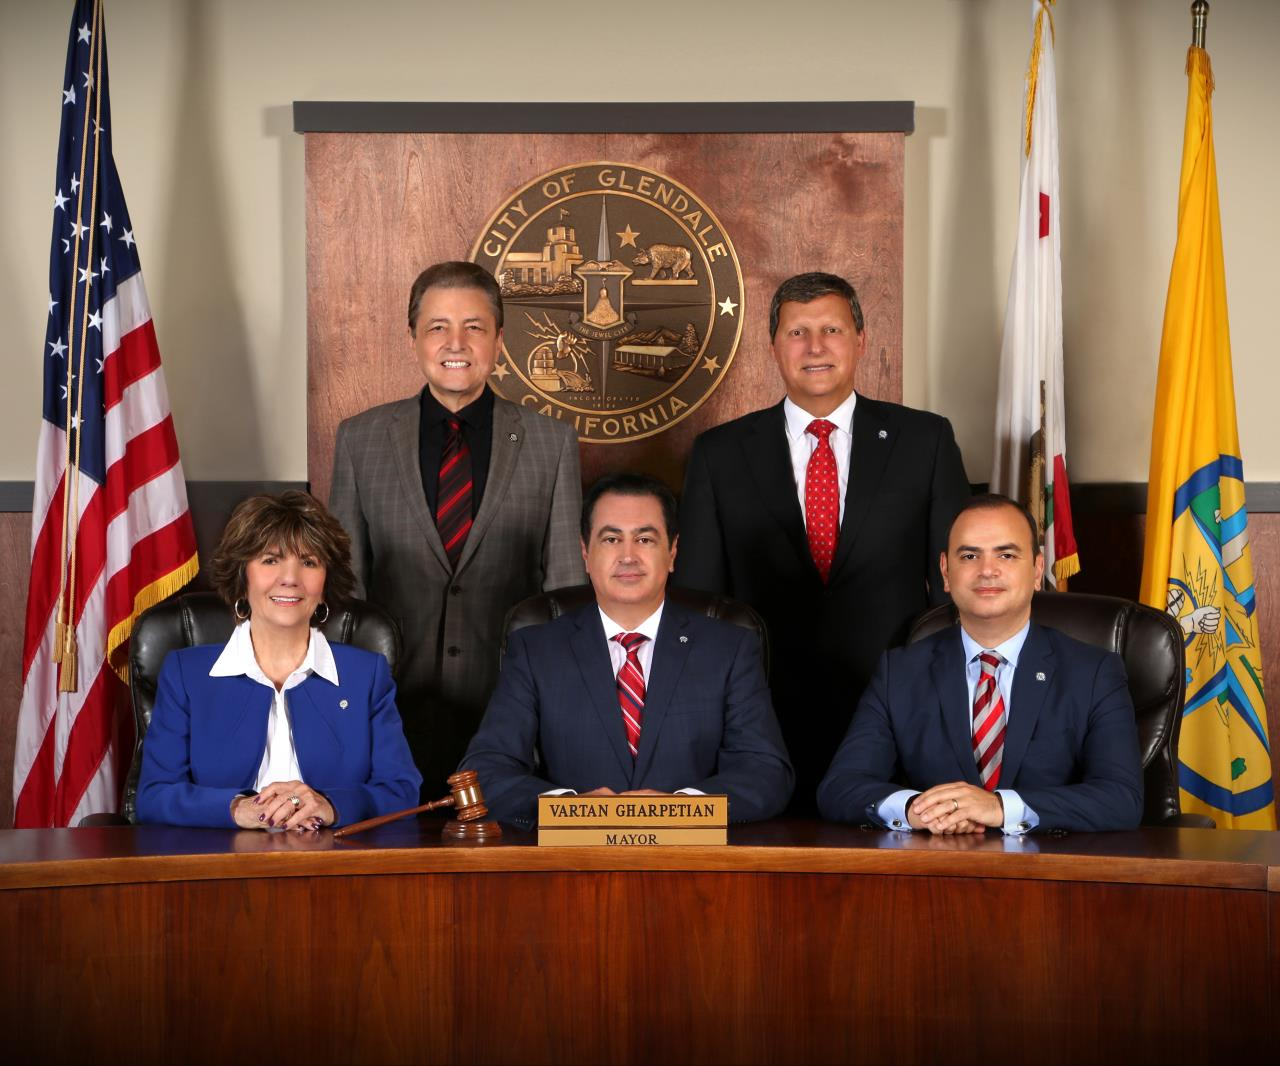 Glendale_city_council